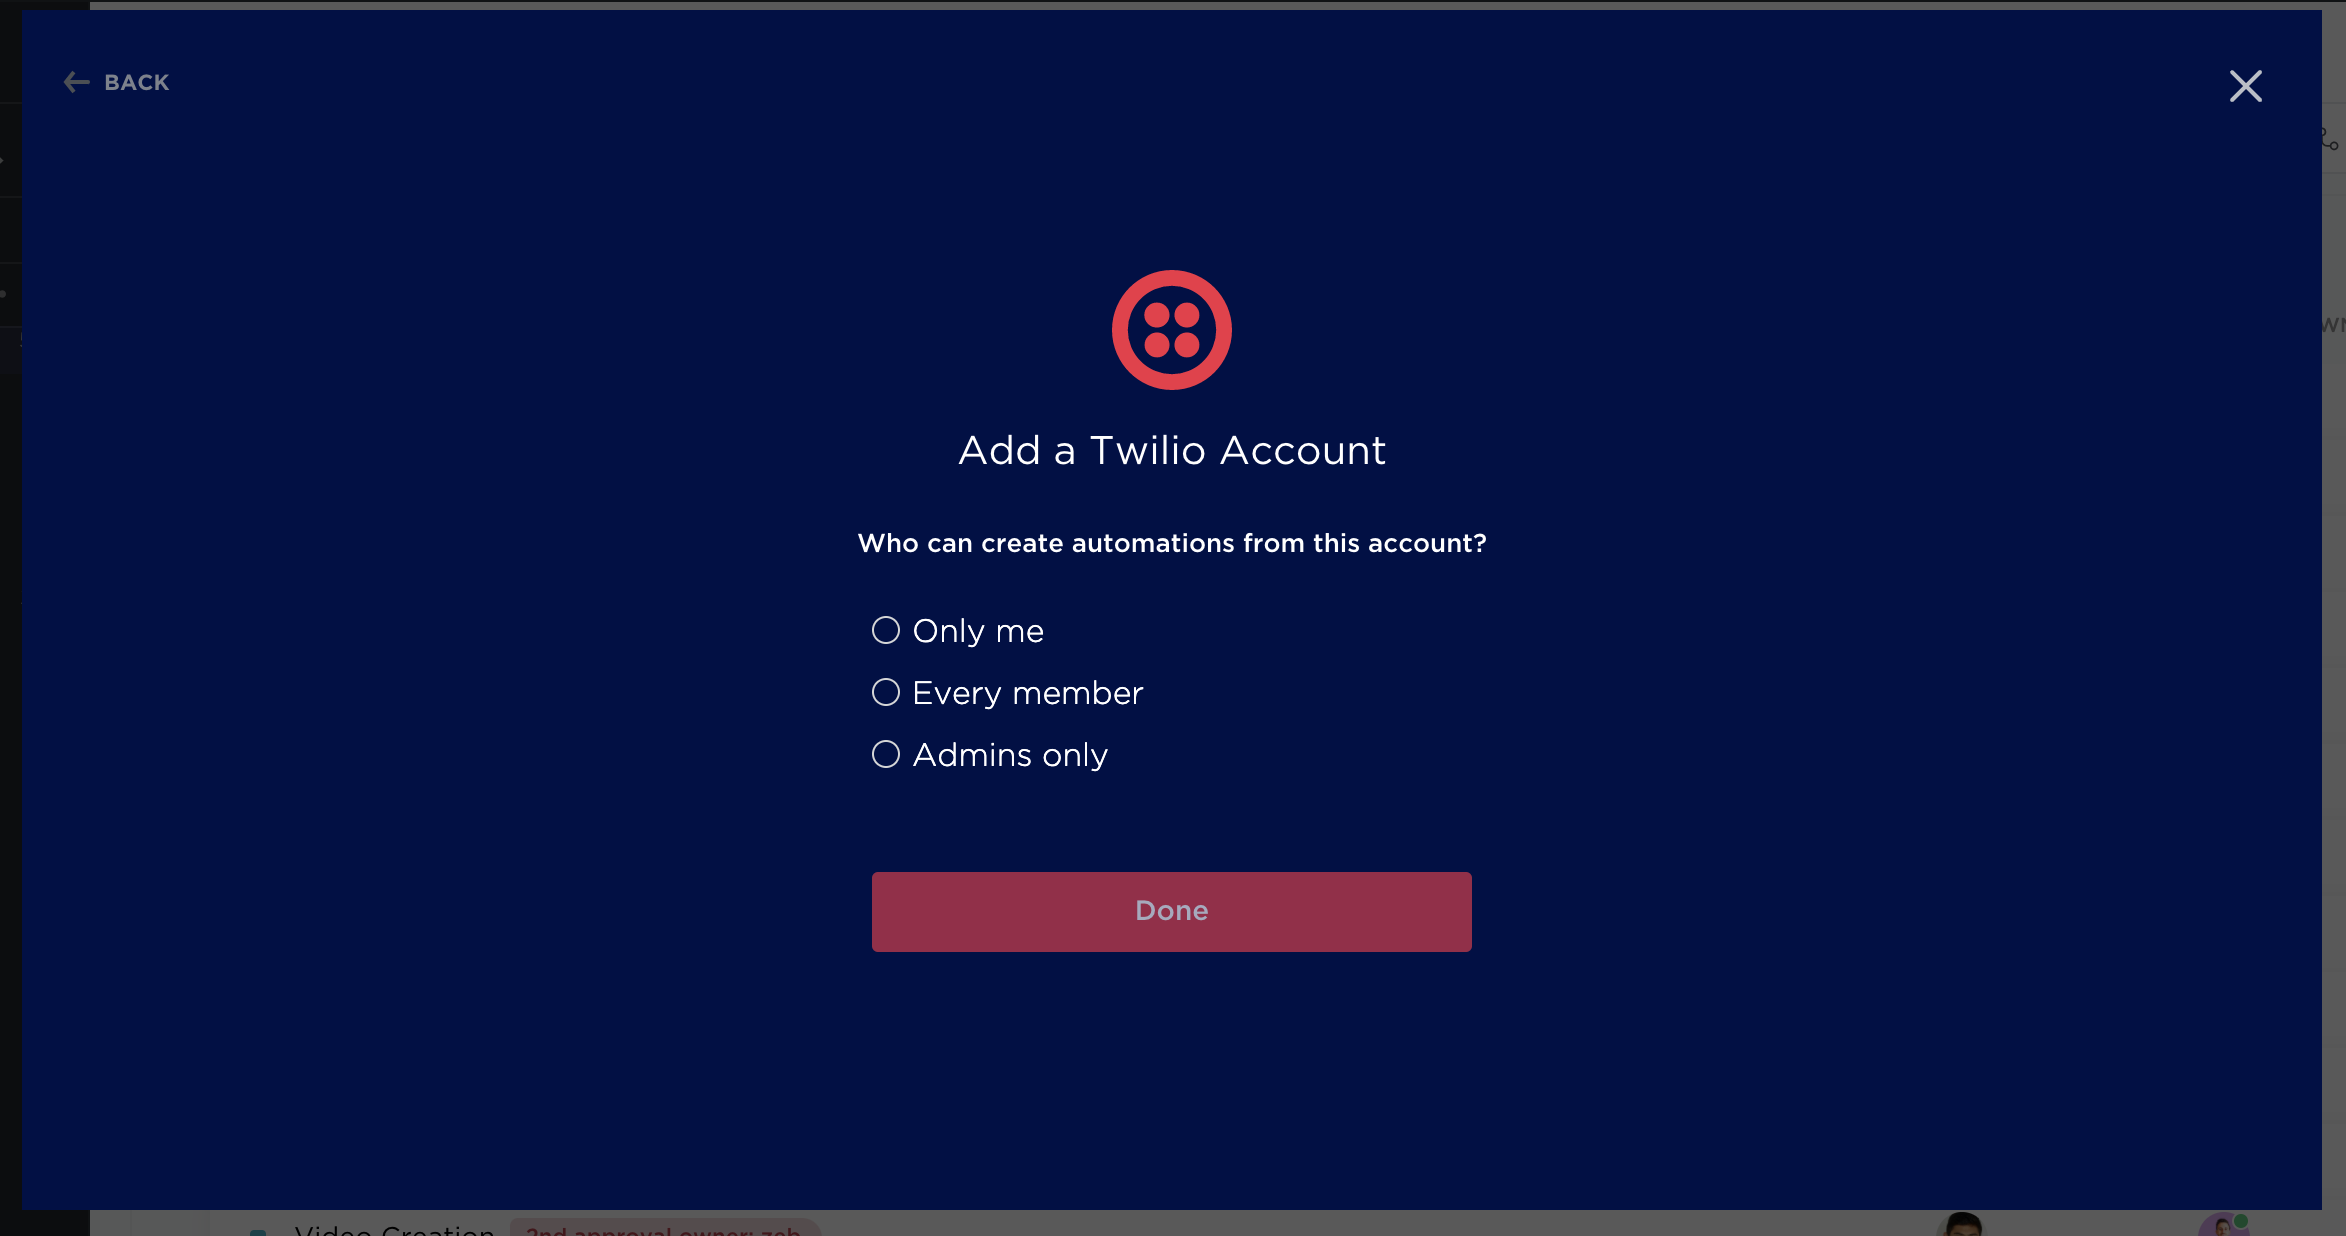 Select who can use this Twilio account with Automations